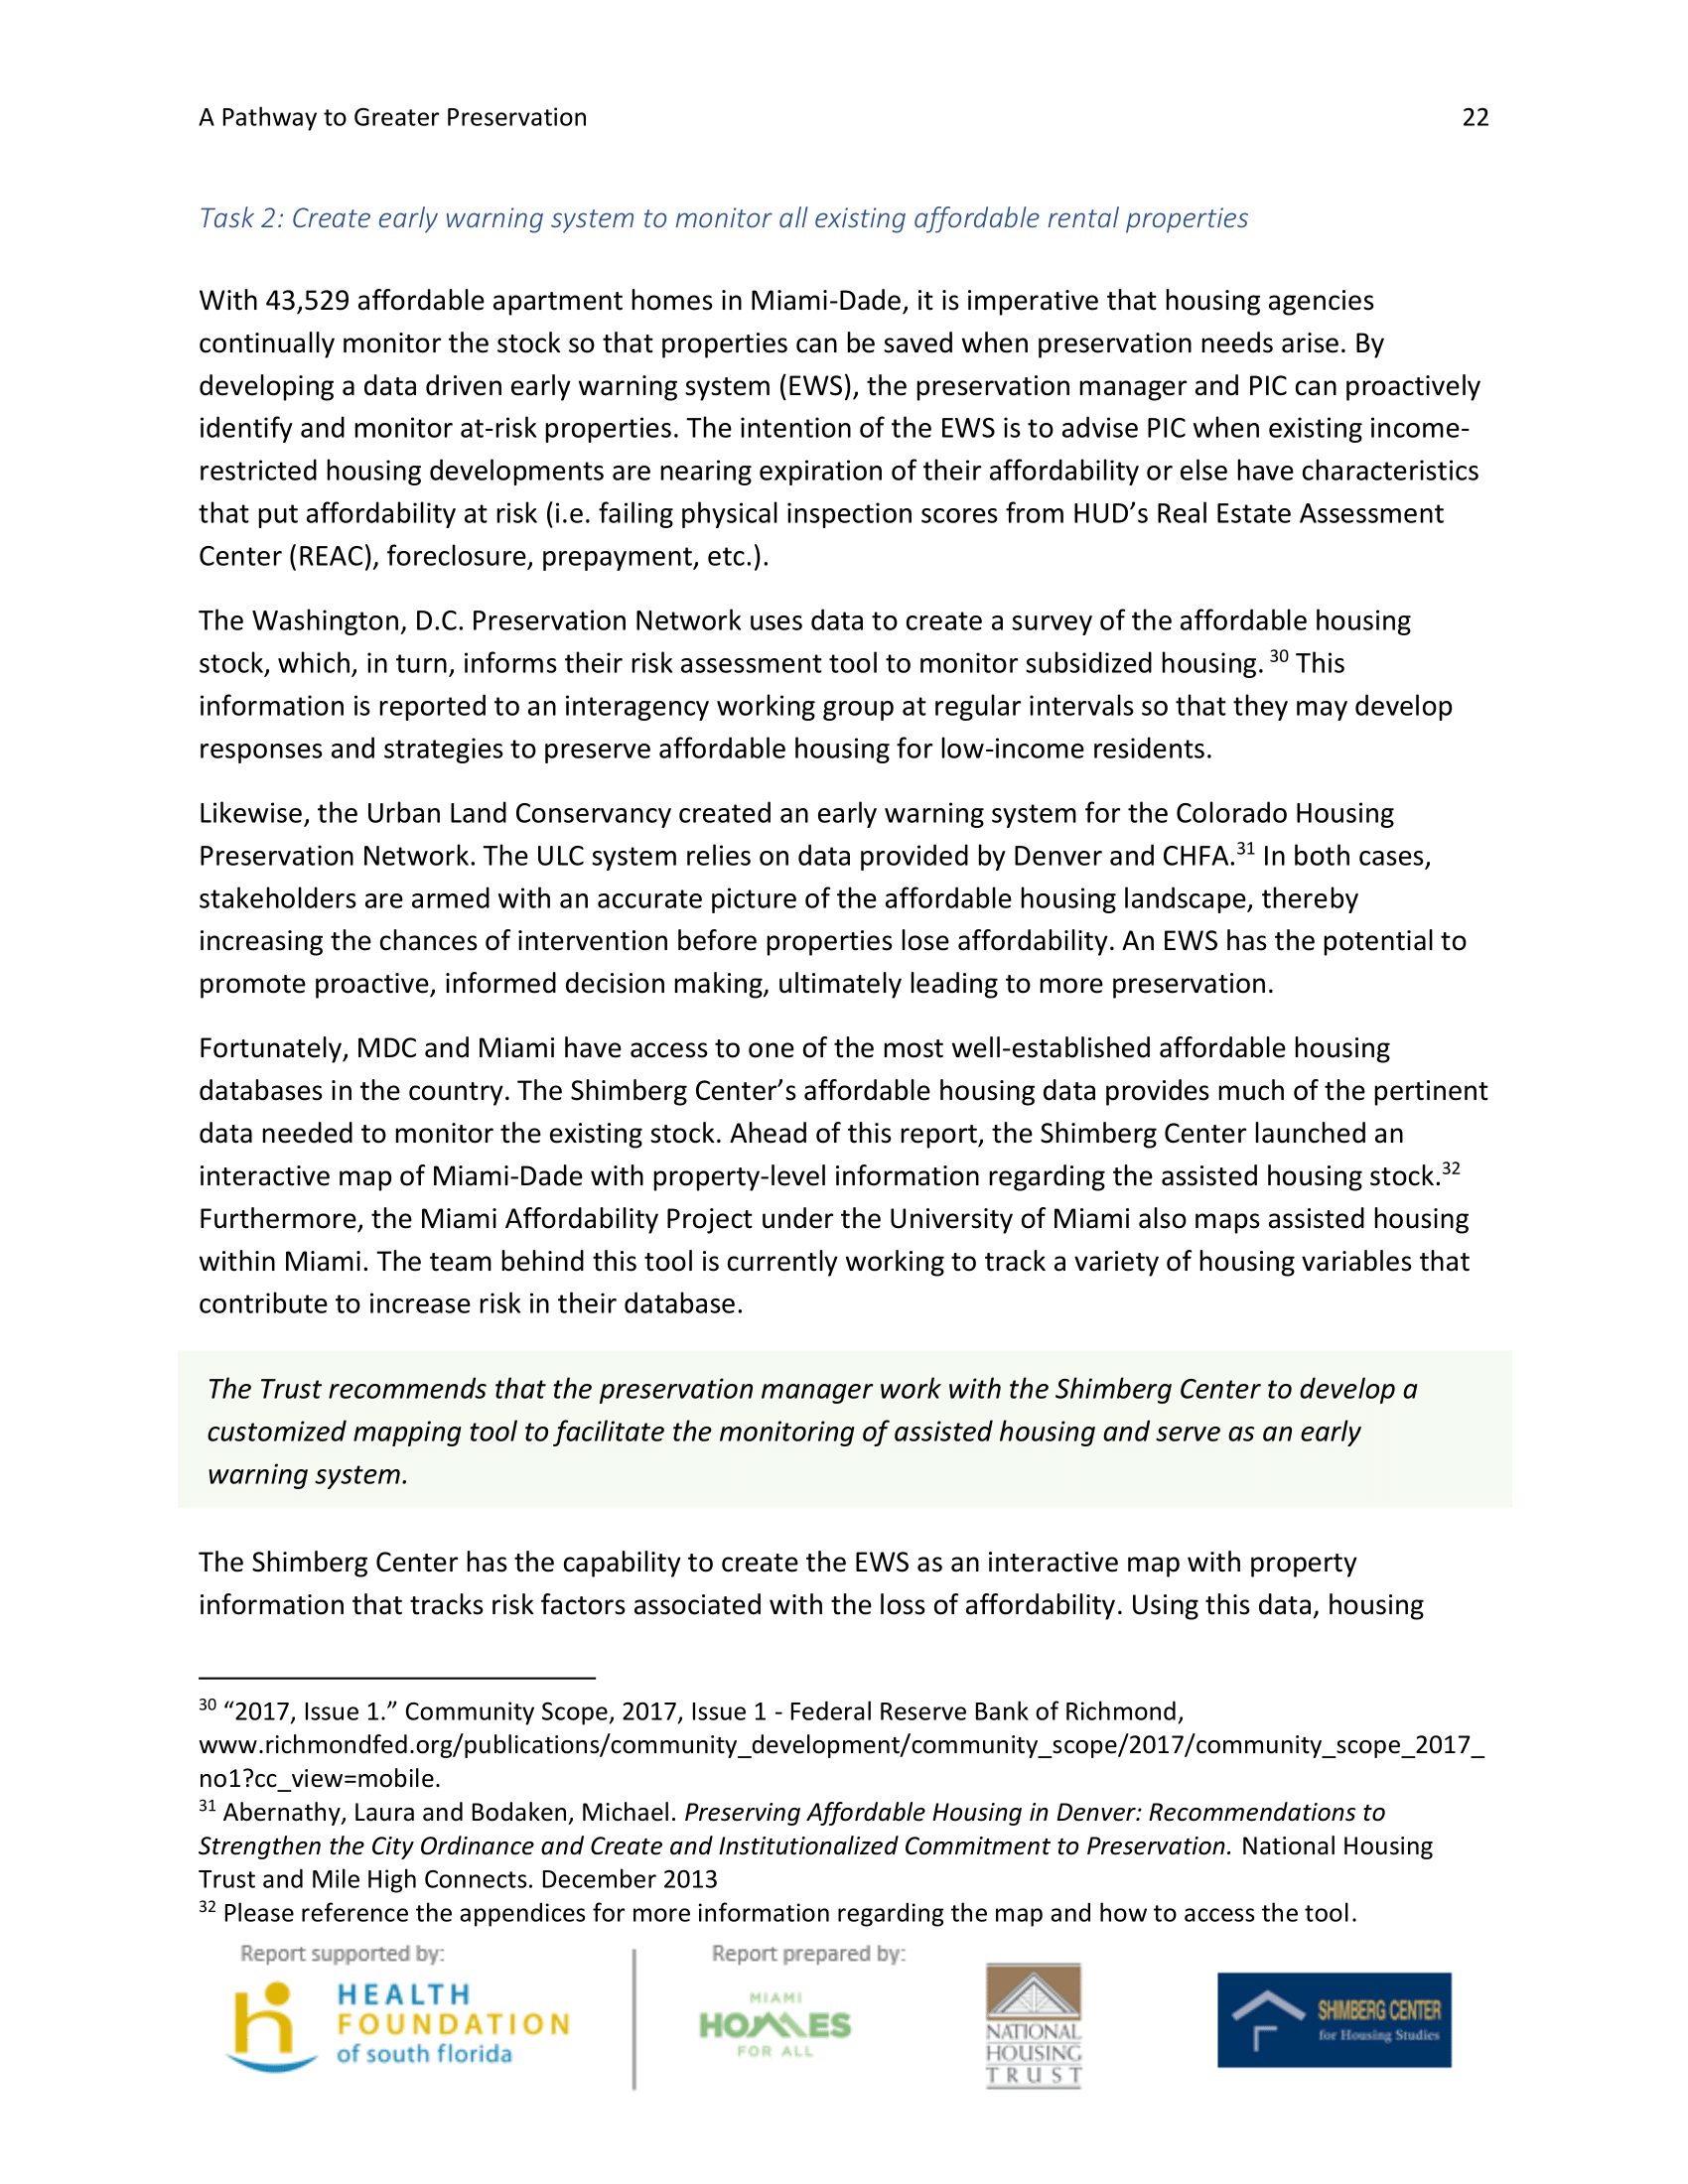 A Pathway to Greater Preservation - February 2018-30.png